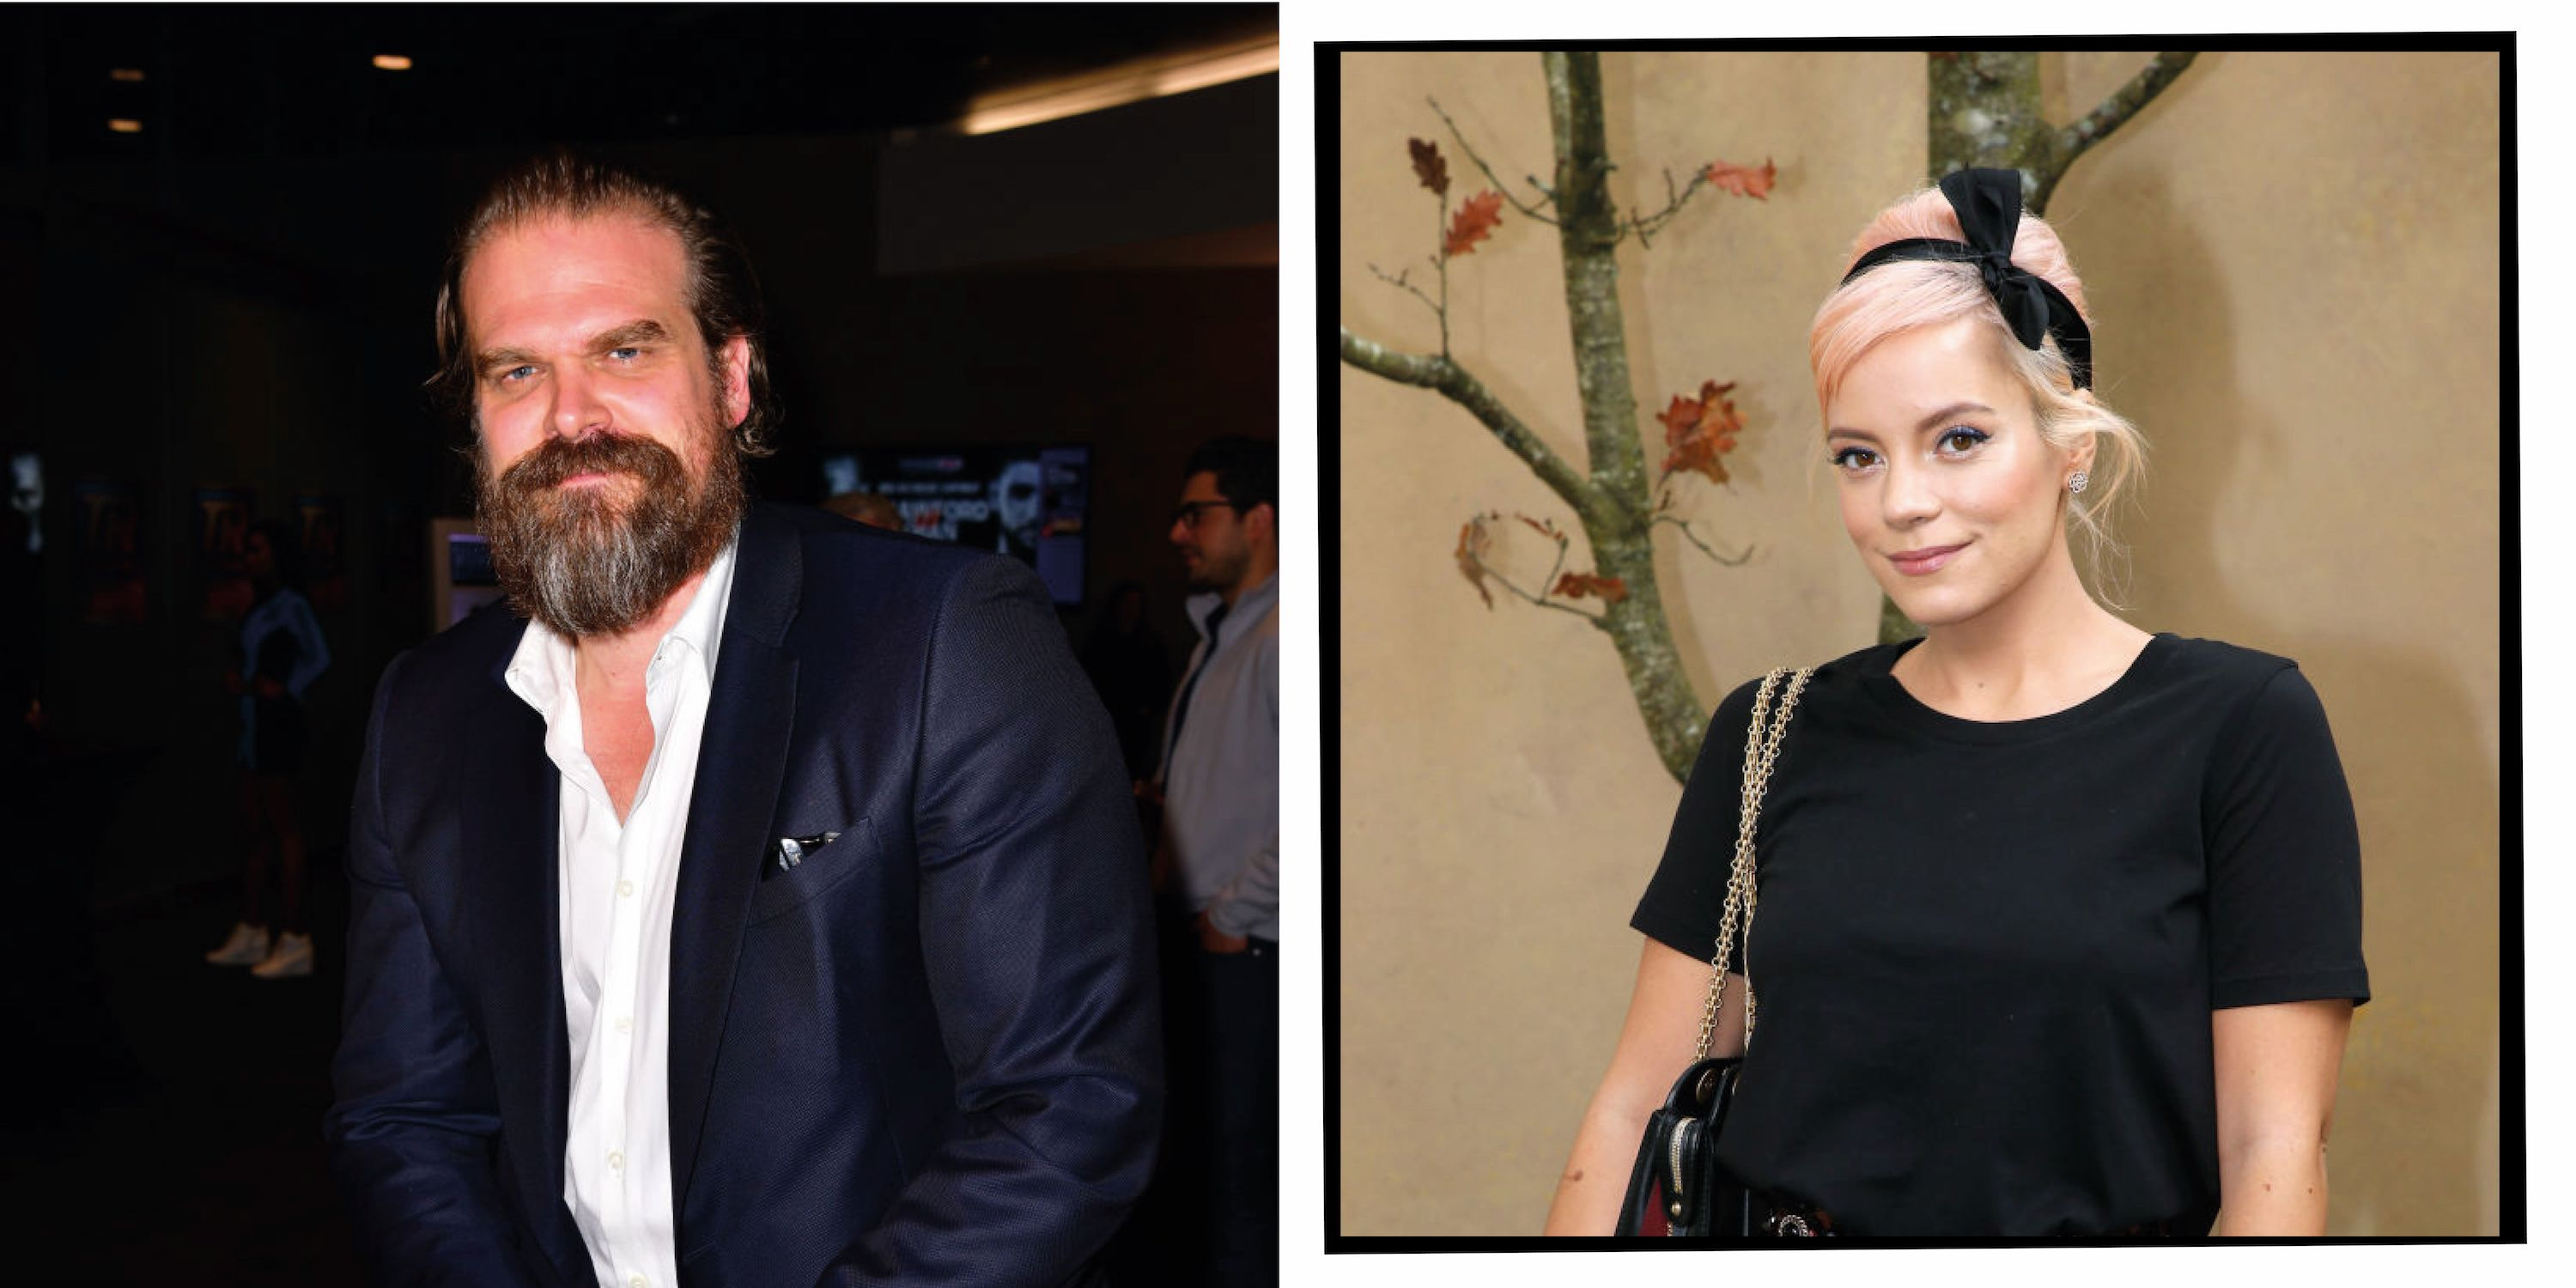 Lilly Allen And David Harbour's Relationship: Singer And Stranger Things Actor Pictured Kissing In NYC